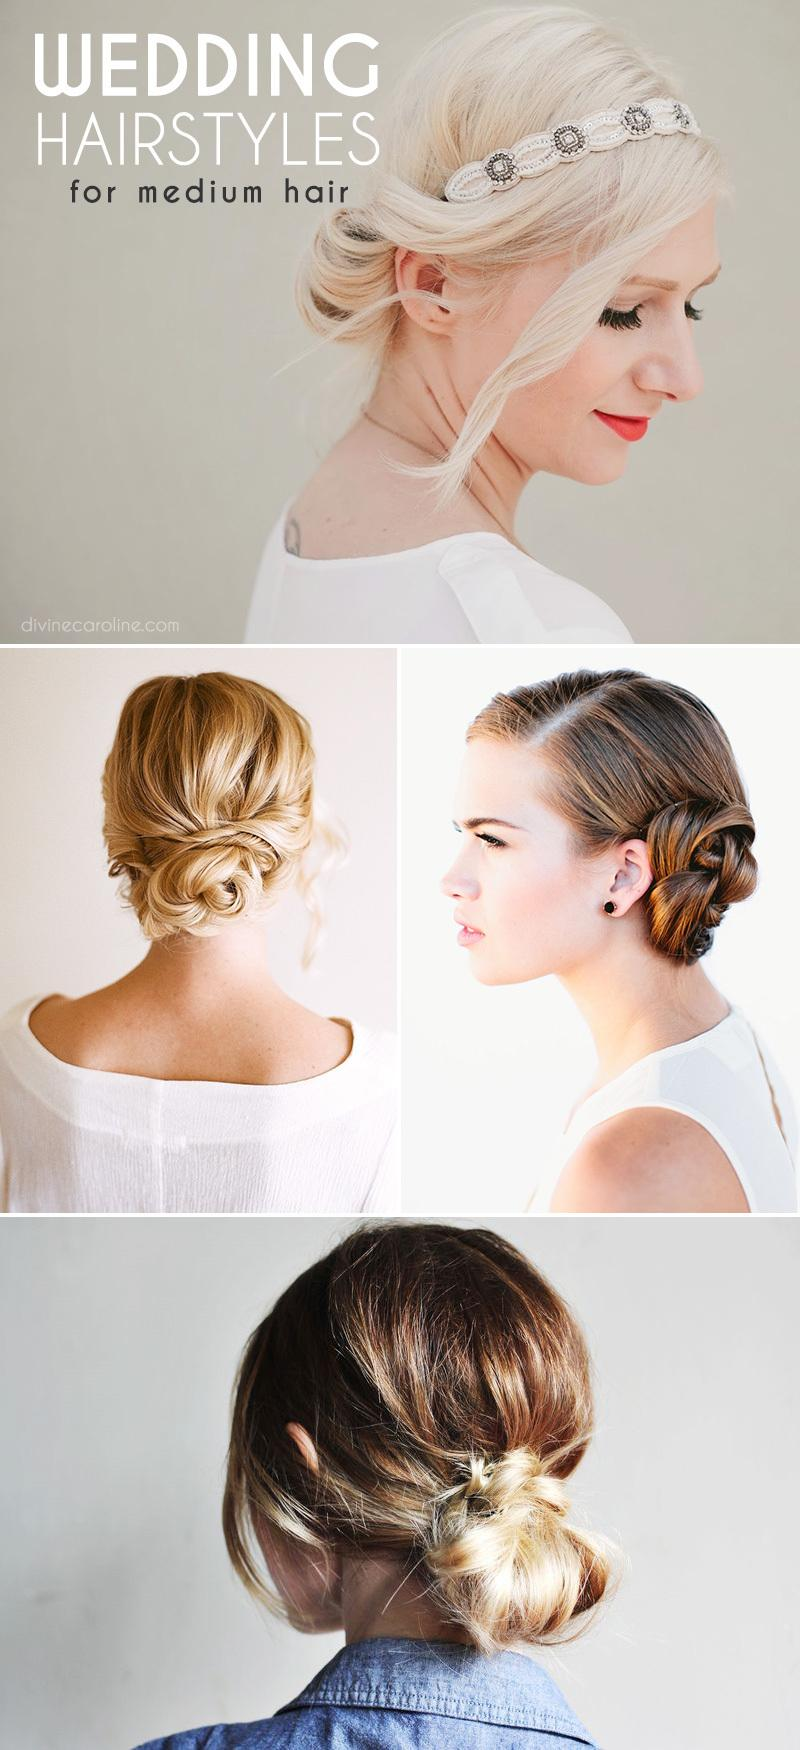 Tremendous Stunning Wedding Hairstyles For Medium Length Hair More Com Hairstyle Inspiration Daily Dogsangcom